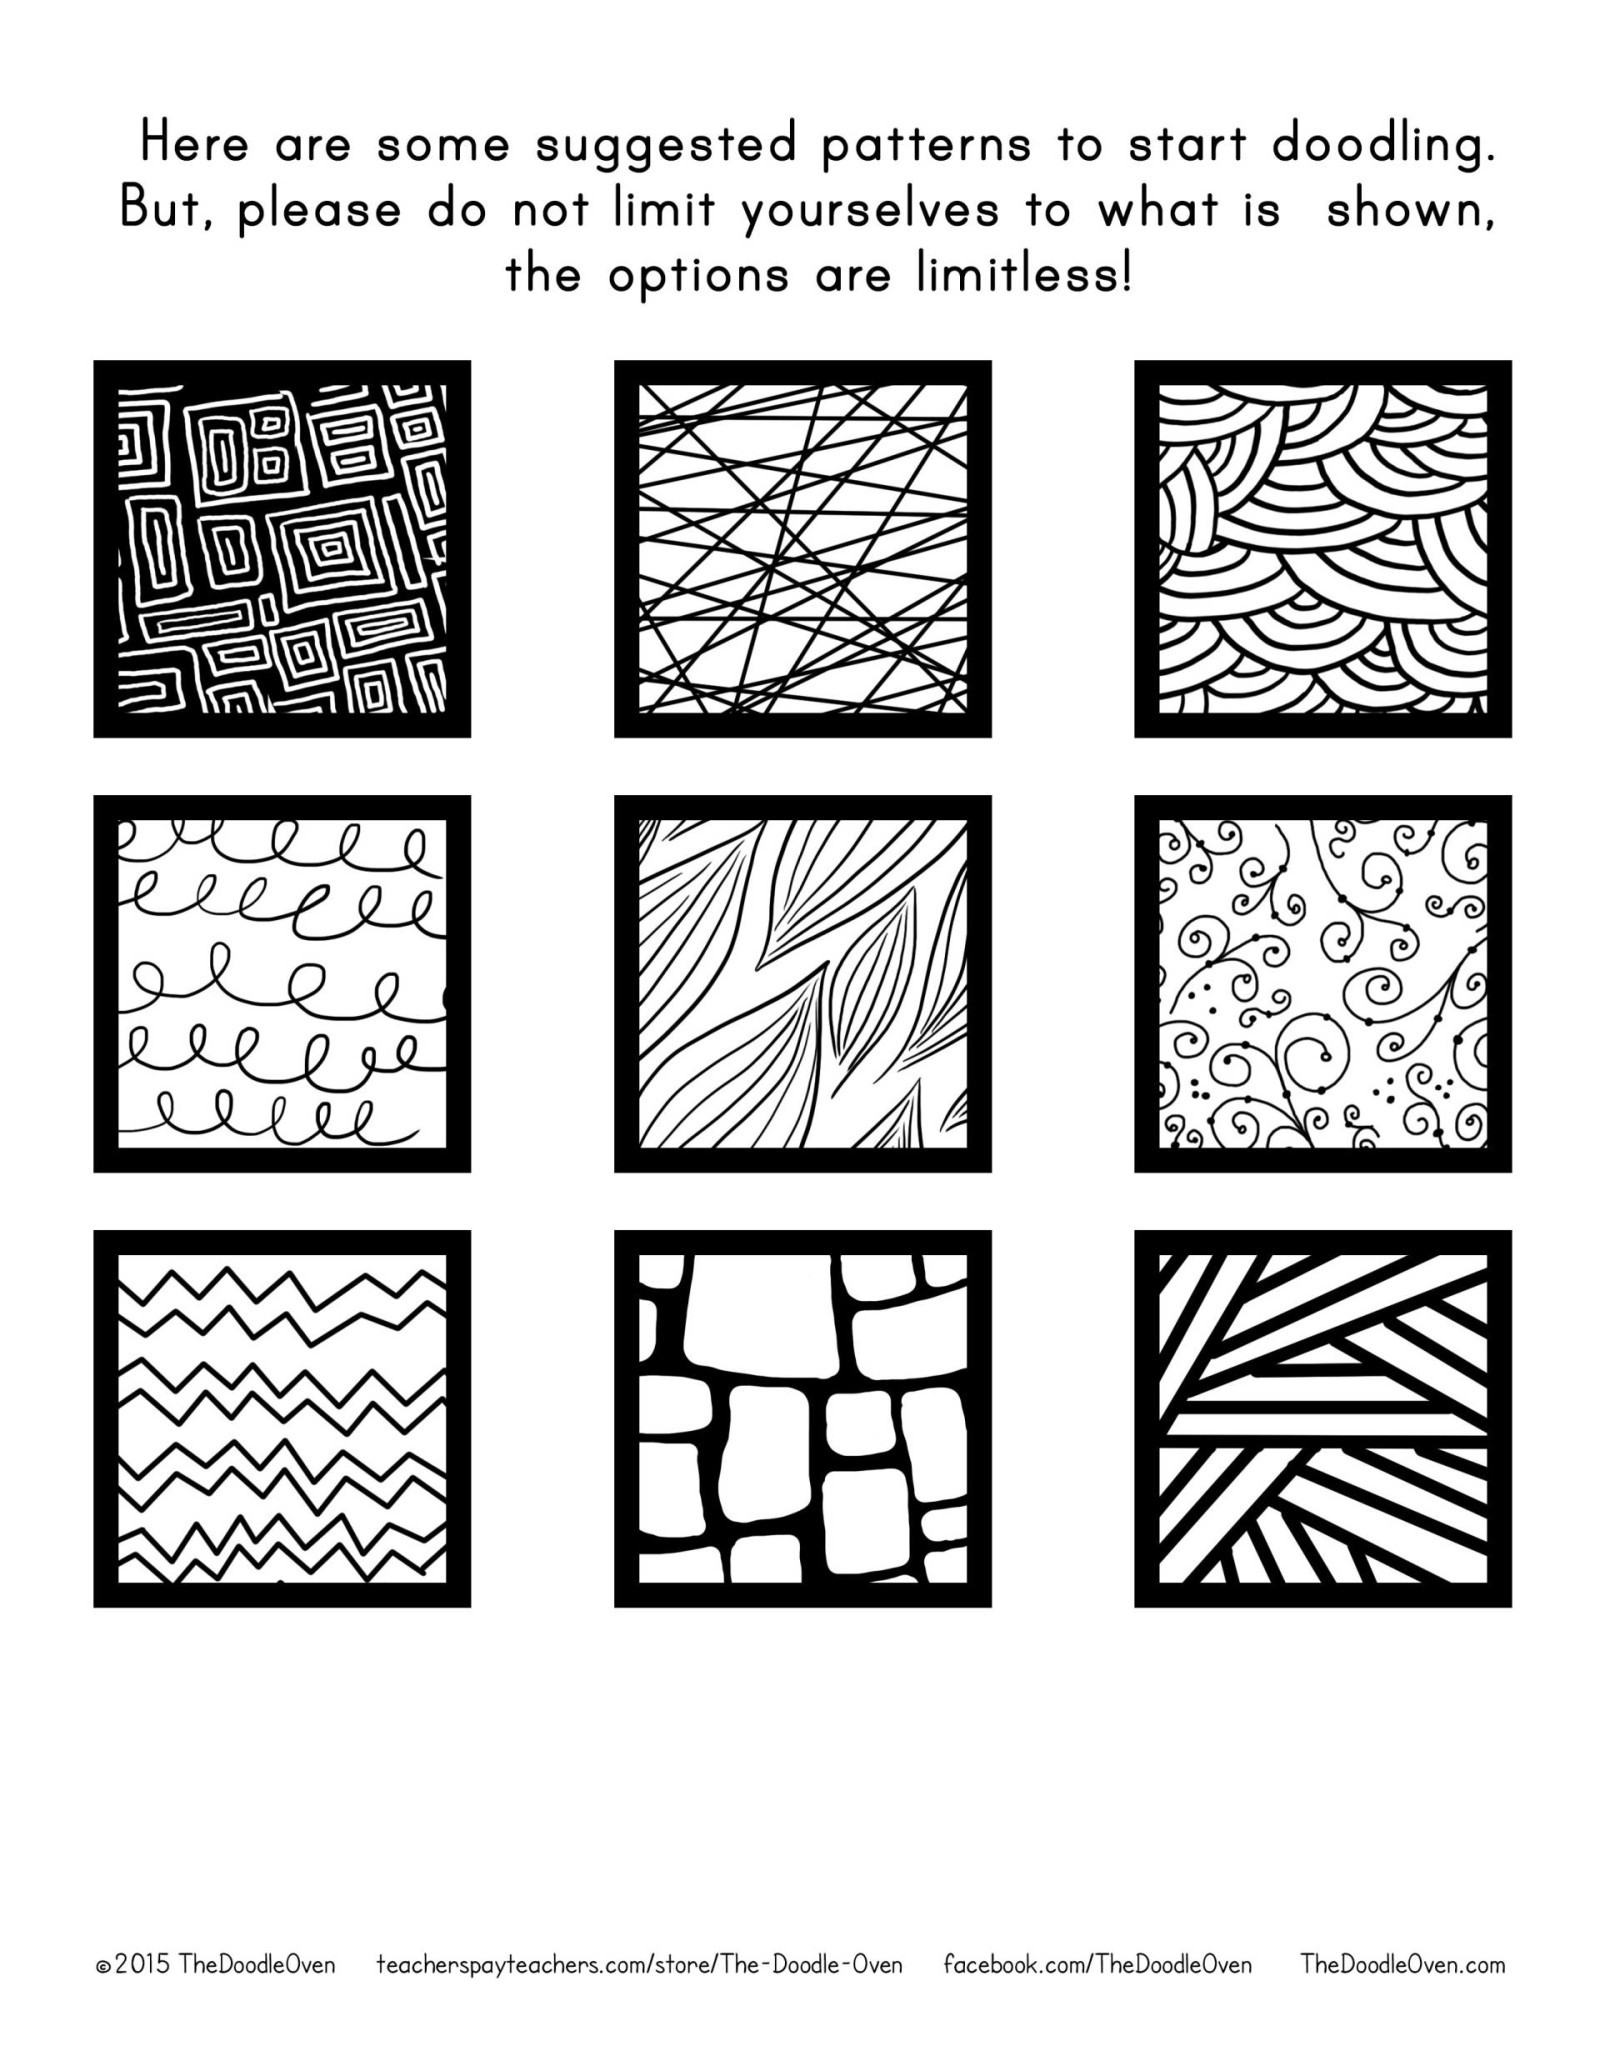 Zentangle Pattern Suggestions The Doodle Oven Heidi